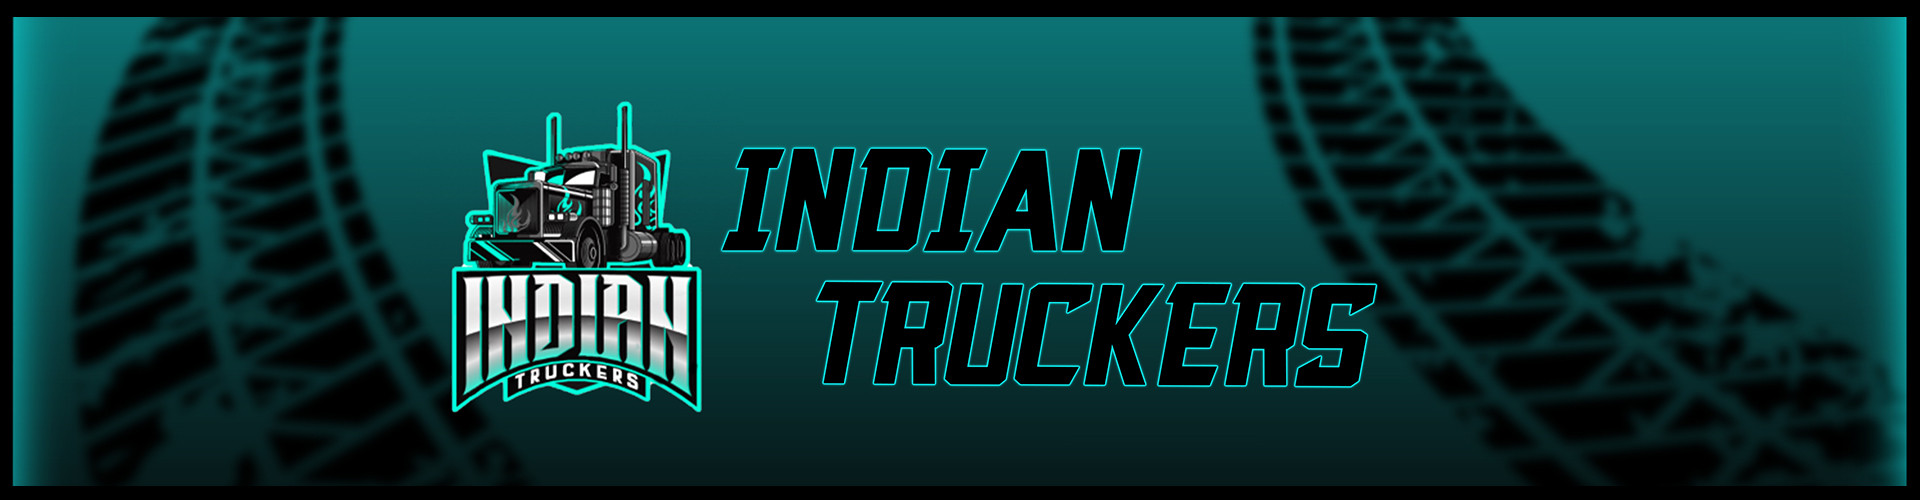 INDIAN TRUCKERS 10th Public Convoy